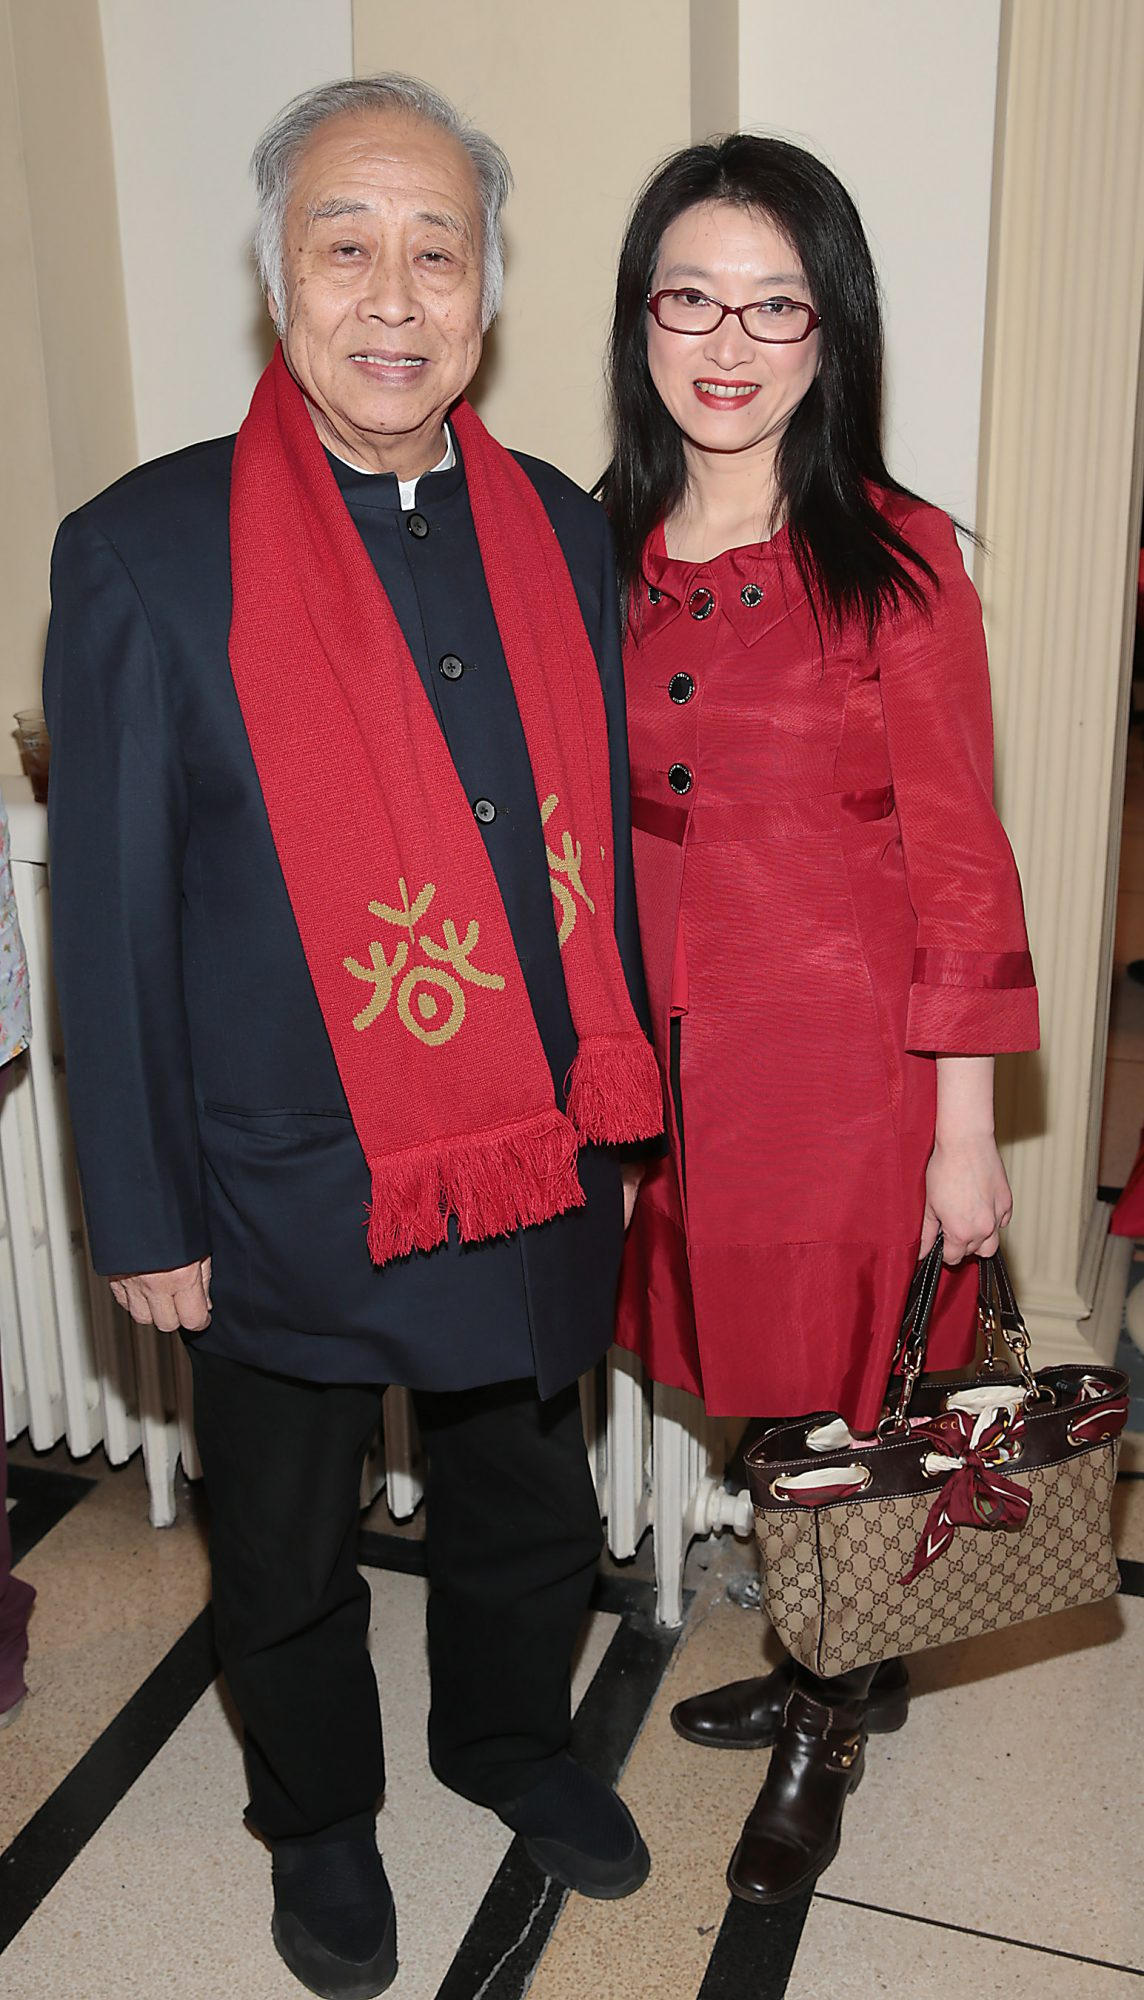 Howard Pau and Yue Yu pictured at the official opening event of Dublin Chinese New Year Festival 2019 at The Hugh Lane Gallery sponsored by Kildare Village. Dublin Chinese New Year Festival runs until 17th February for more see www.dublinchinesenewyear.com   Pic Brian McEvoy